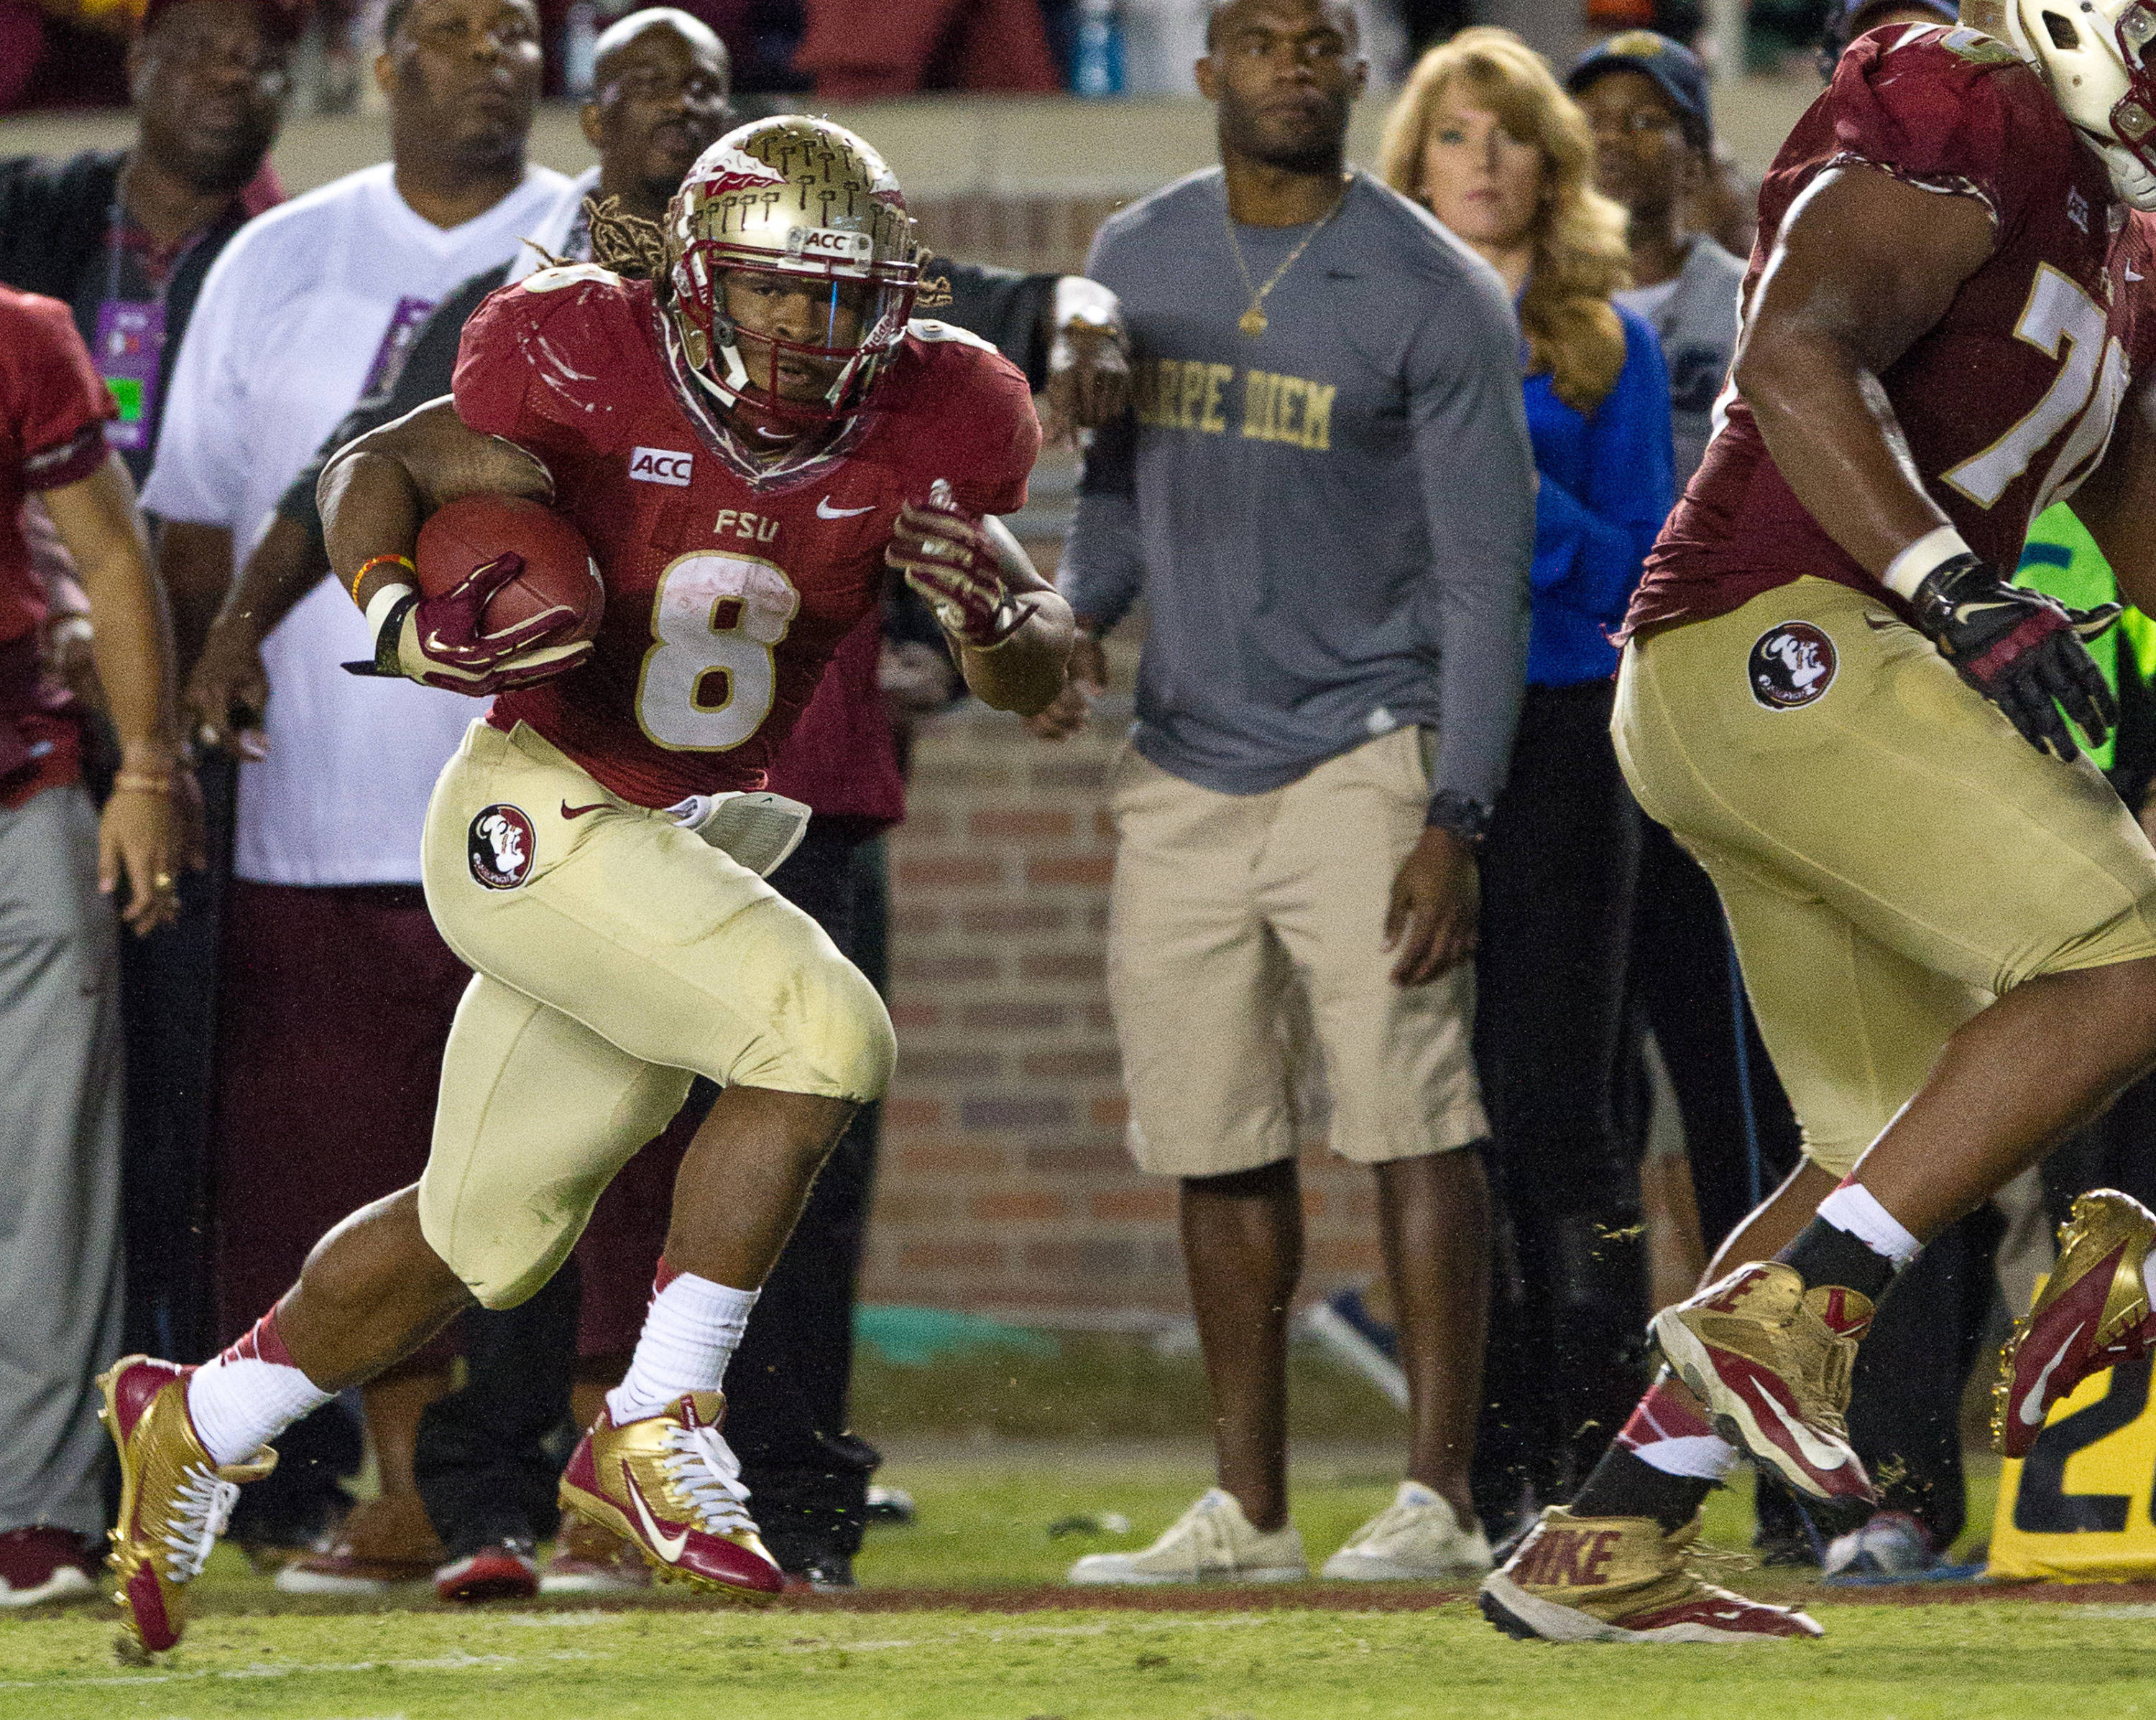 Devonta Freeman (8) runs the ball during FSU football's 41-14 win over Miami on Saturday, November 2, 2013 in Tallahassee, Fla. Photo by Michael Schwarz.